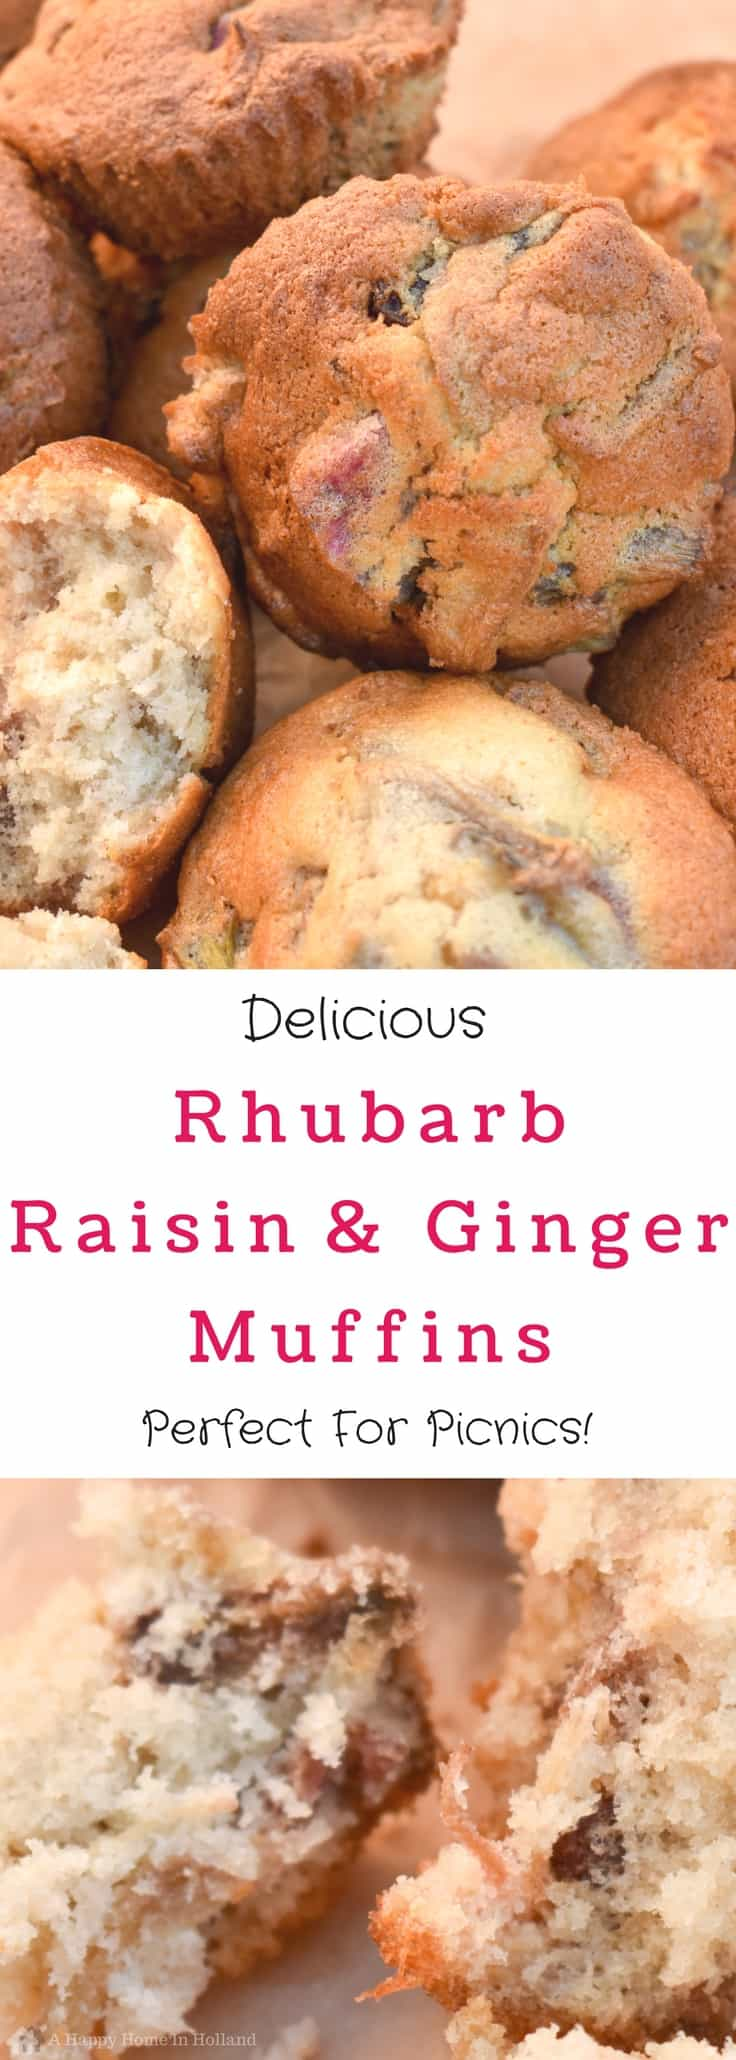 These rhubarb muffins with raisins and ginger are delicious served as a breakfast idea, during an afternoon tea or at a family picnic or potluck.